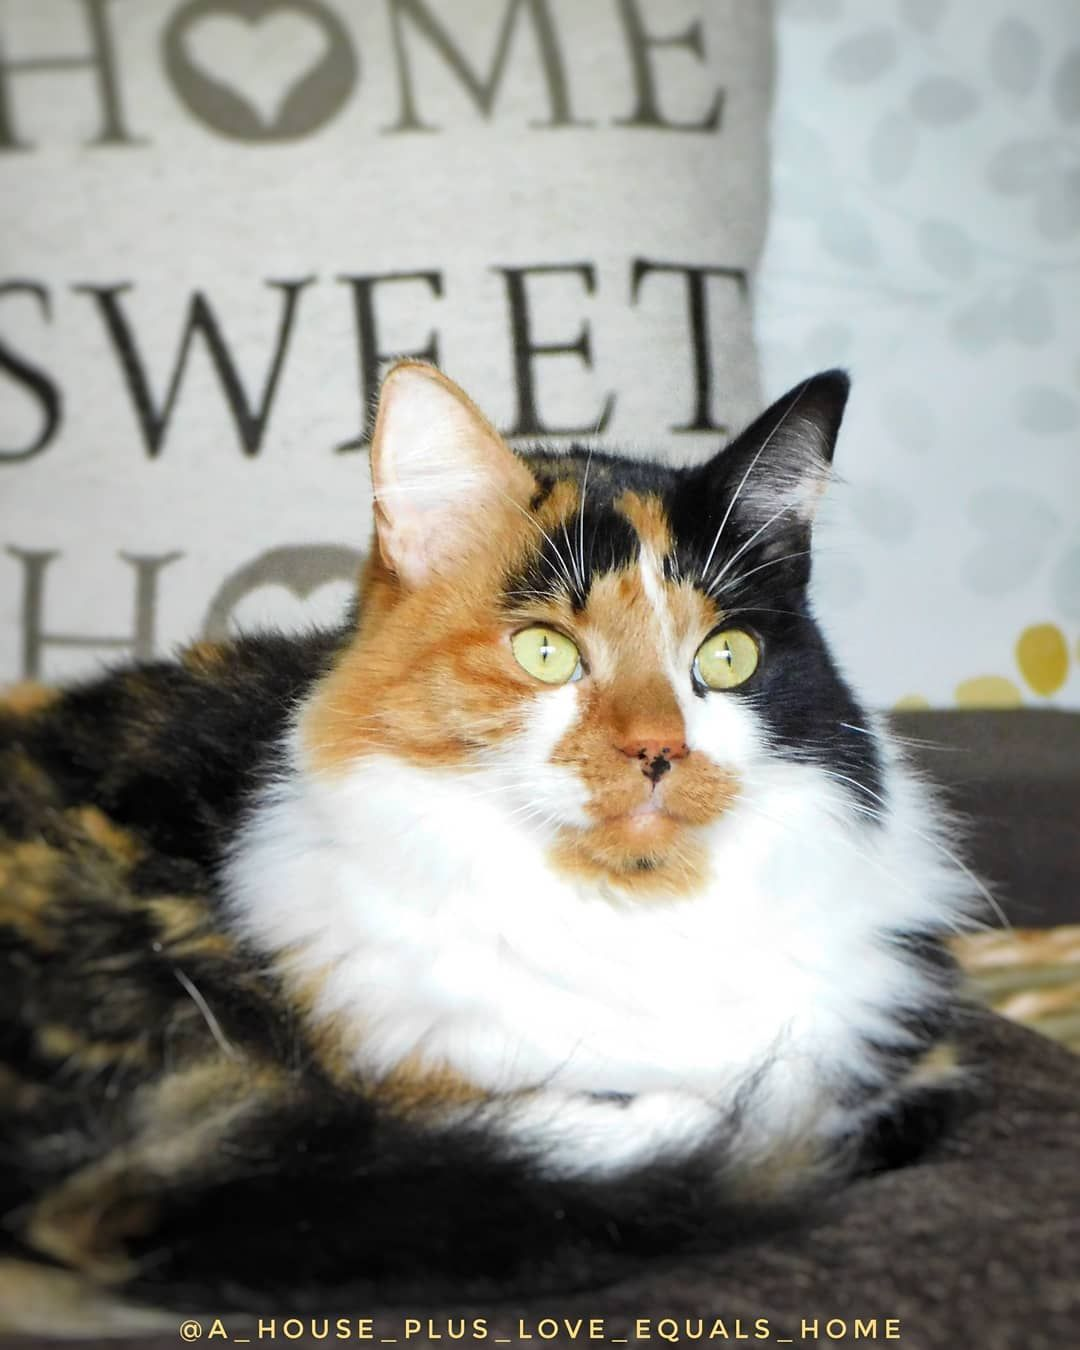 ........  𝐂𝐚𝐭𝐬 𝐦𝐚𝐤𝐞 𝐨𝐮𝐫 𝐡𝐨𝐮𝐬𝐞 𝐚 𝐬𝐰𝐞𝐞𝐭 𝐡𝐨𝐦𝐞  Double tap if you agree!  #calico #calicocat #catsathome #homesweethome #mycat #catlover #catonthesofa #catslife #catphotography #cat Instagram Bridge........ ...